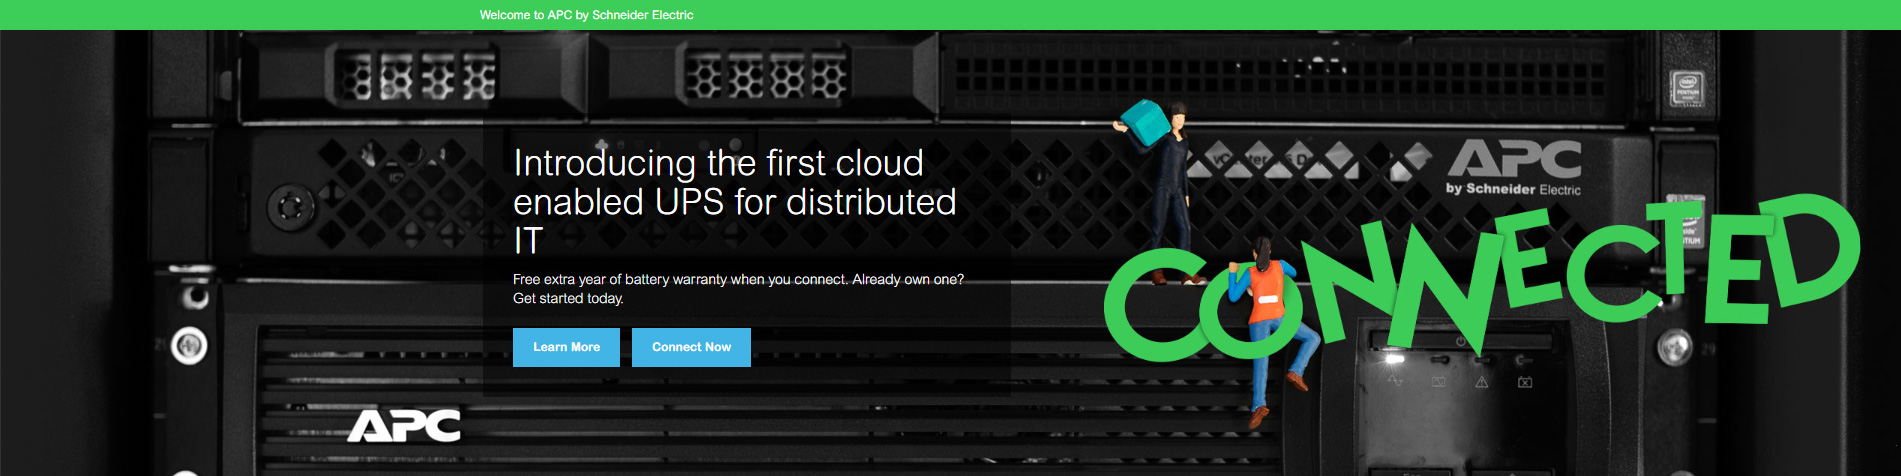 APC by Schneider Electric Virtual Press Office About | ITWeb